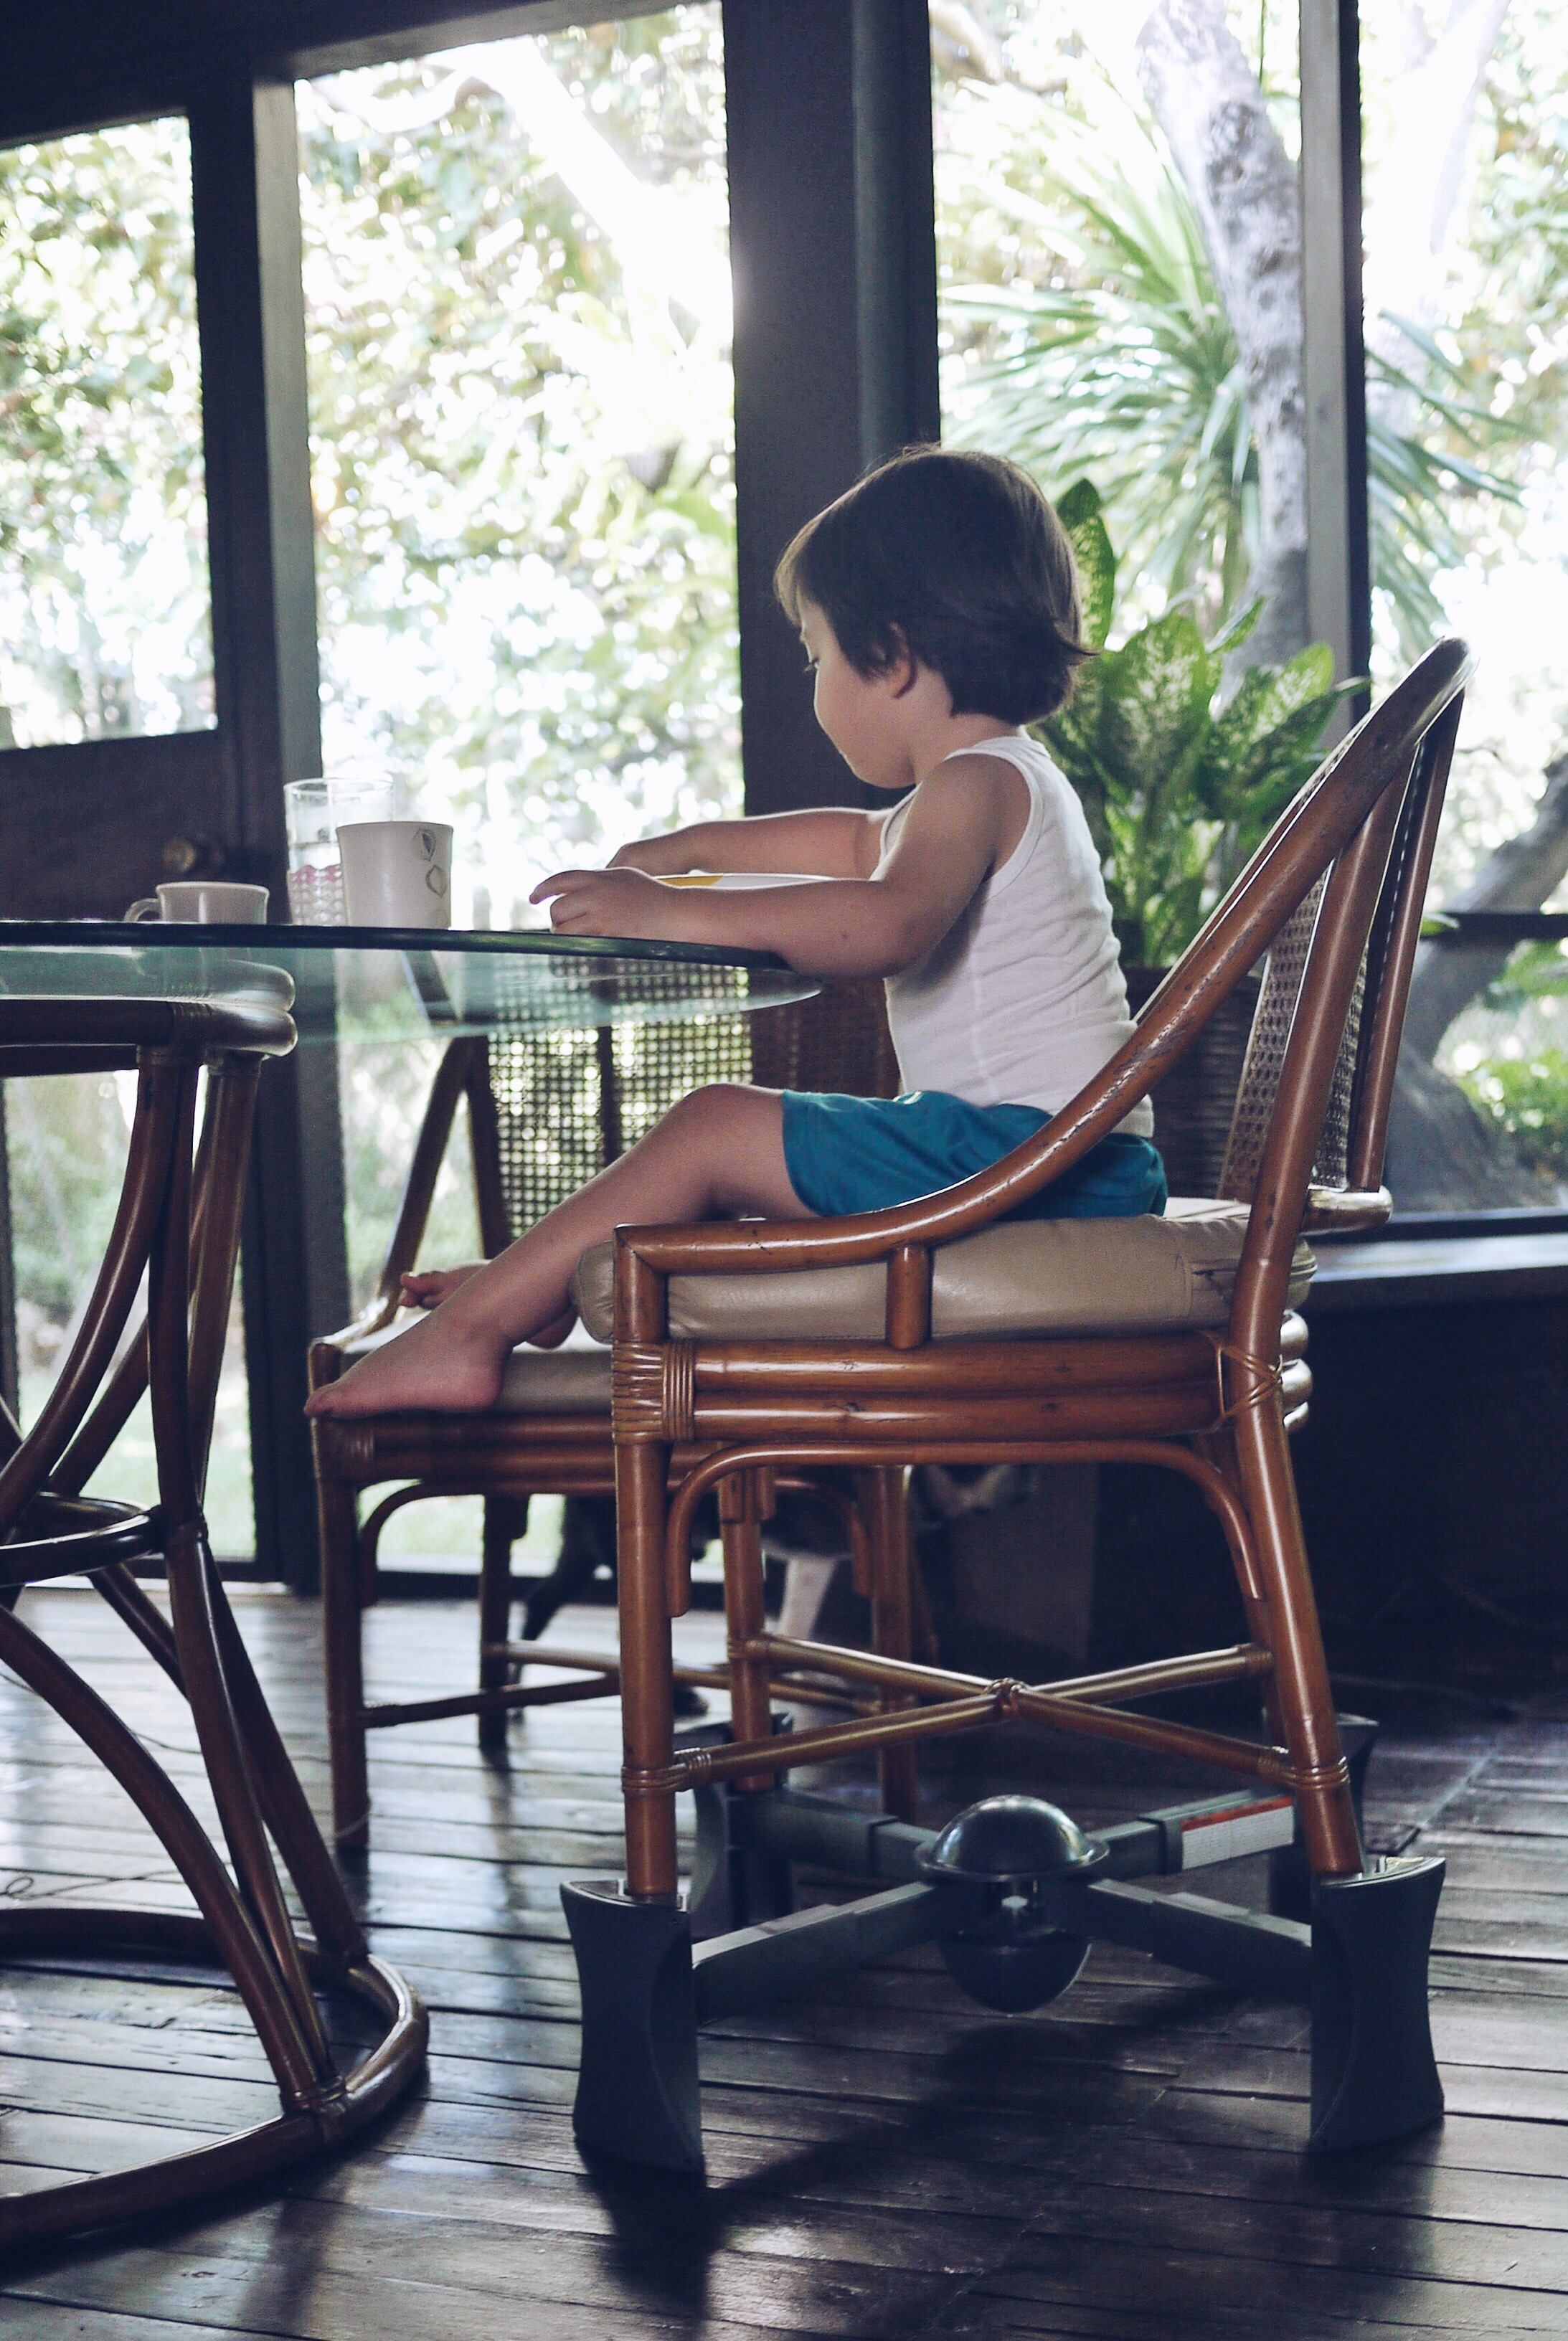 kaboost portable chair booster blow up review philippines